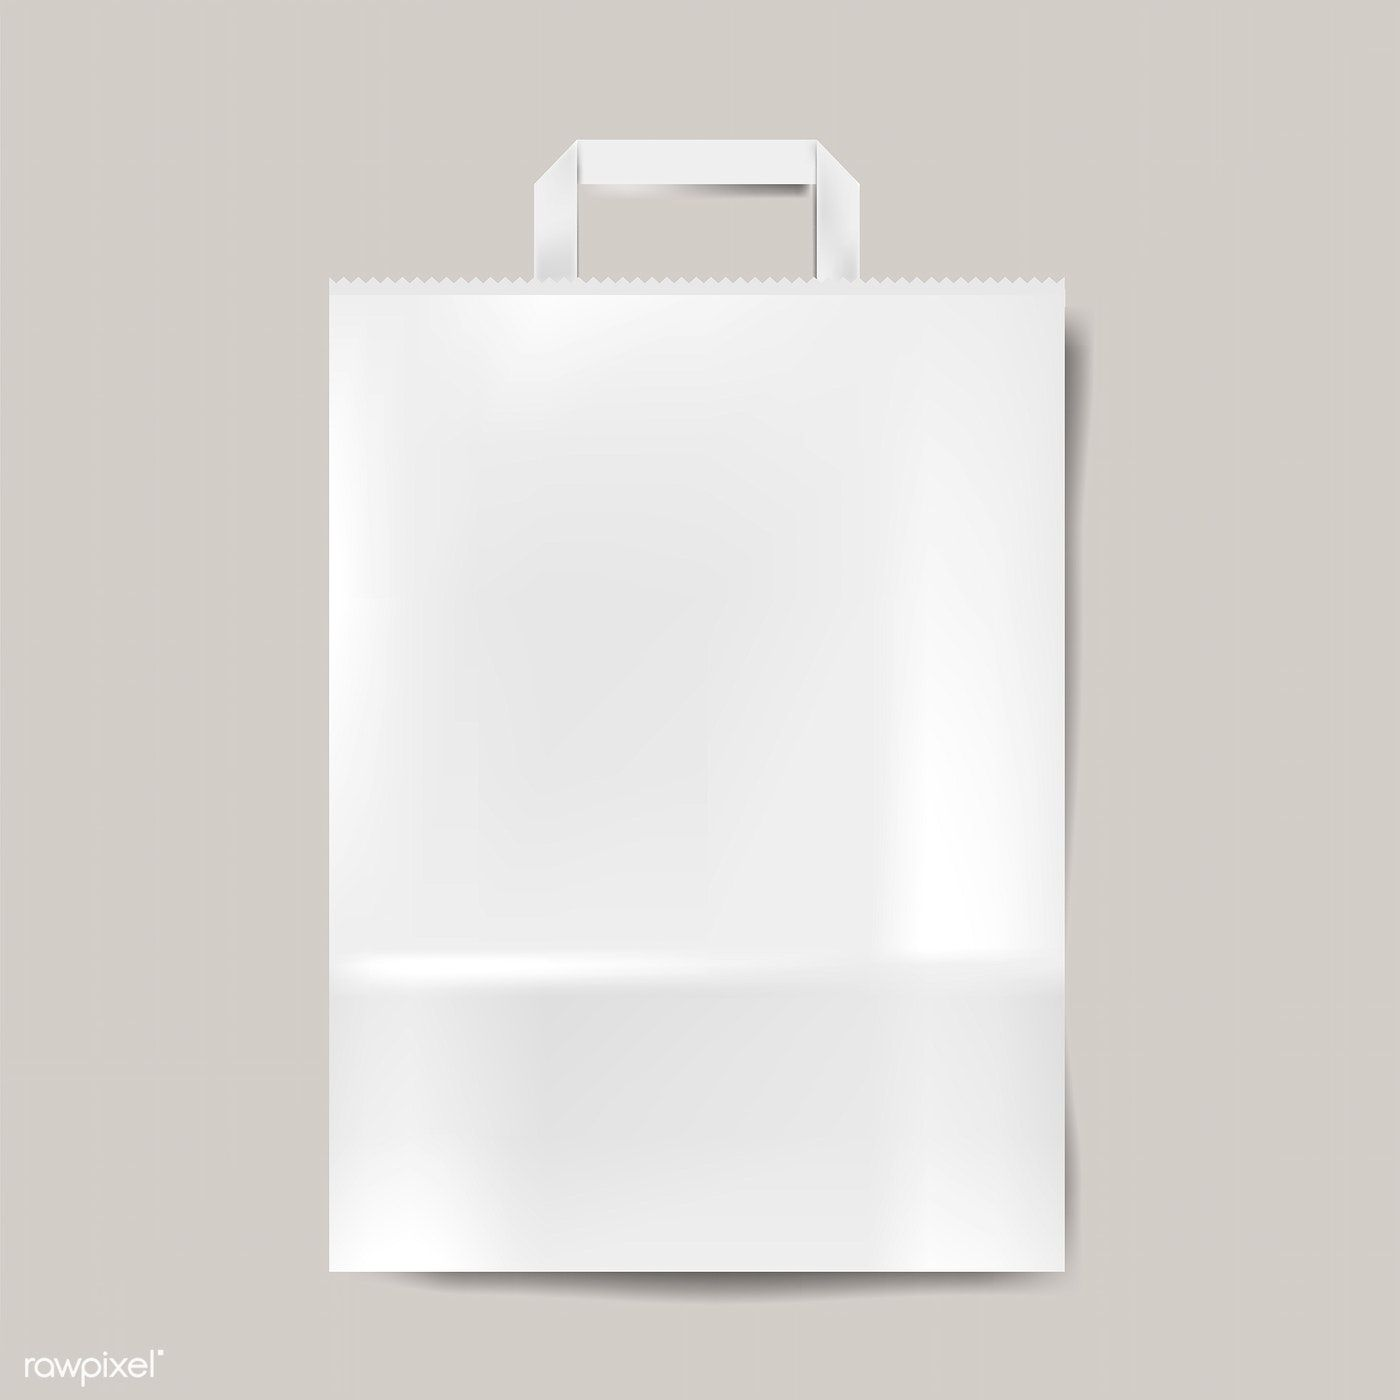 Download Paper Bag Mockup Isolated Vector Free Image By Rawpixel Com Bag Mockup Graphic Design Mockup Paper Bag